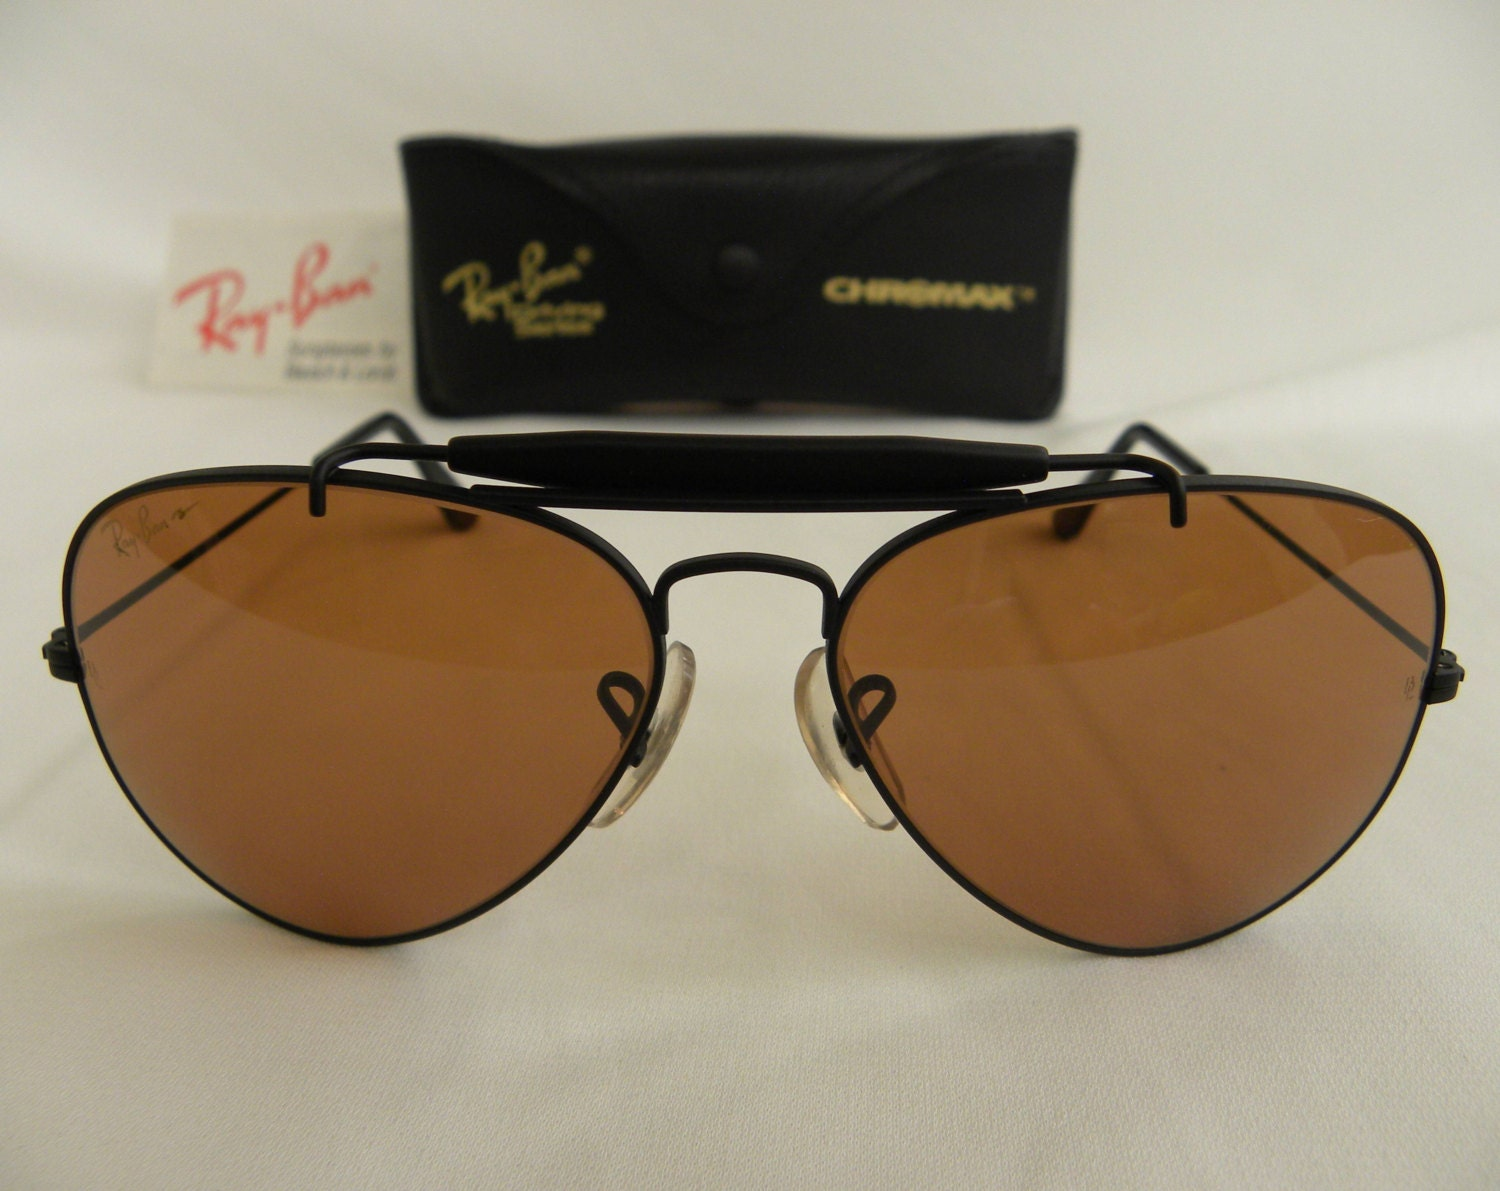 70372f6568 New Vintage B L Ray Ban Outdoorsman Chromax Black 58mm Aviator